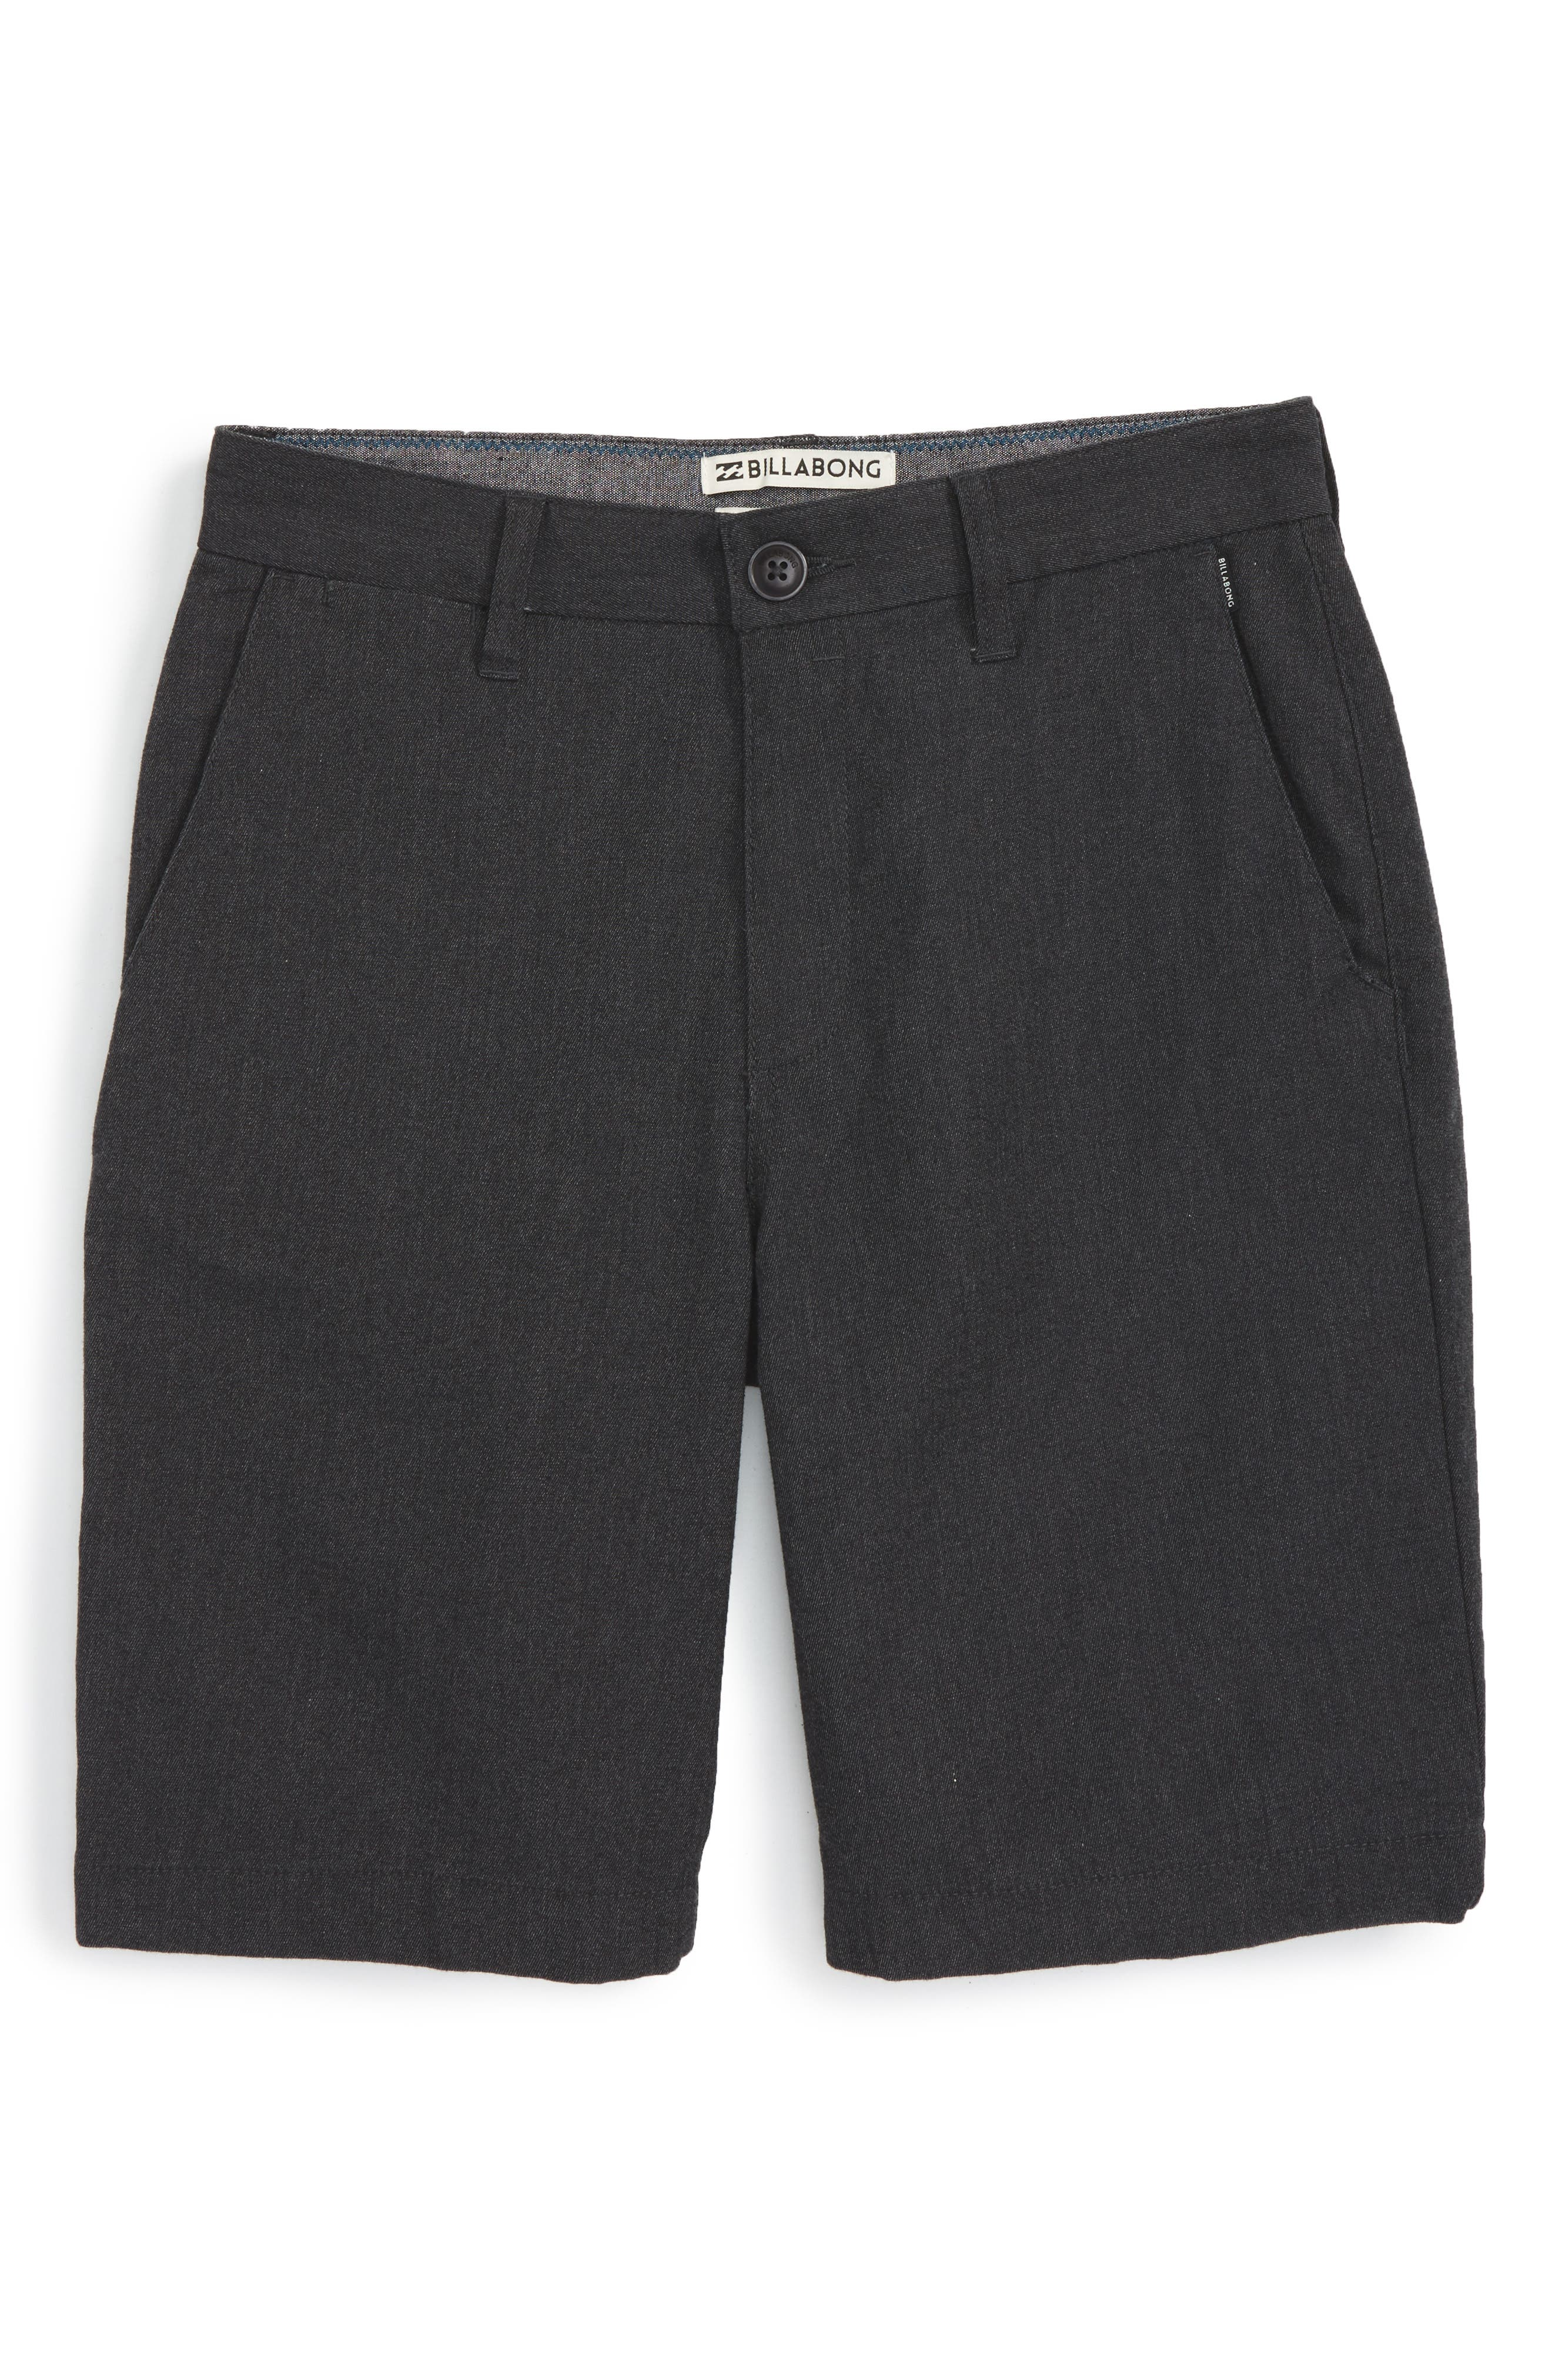 Billabong 'Carter' Cotton Twill Shorts (Big Boys)